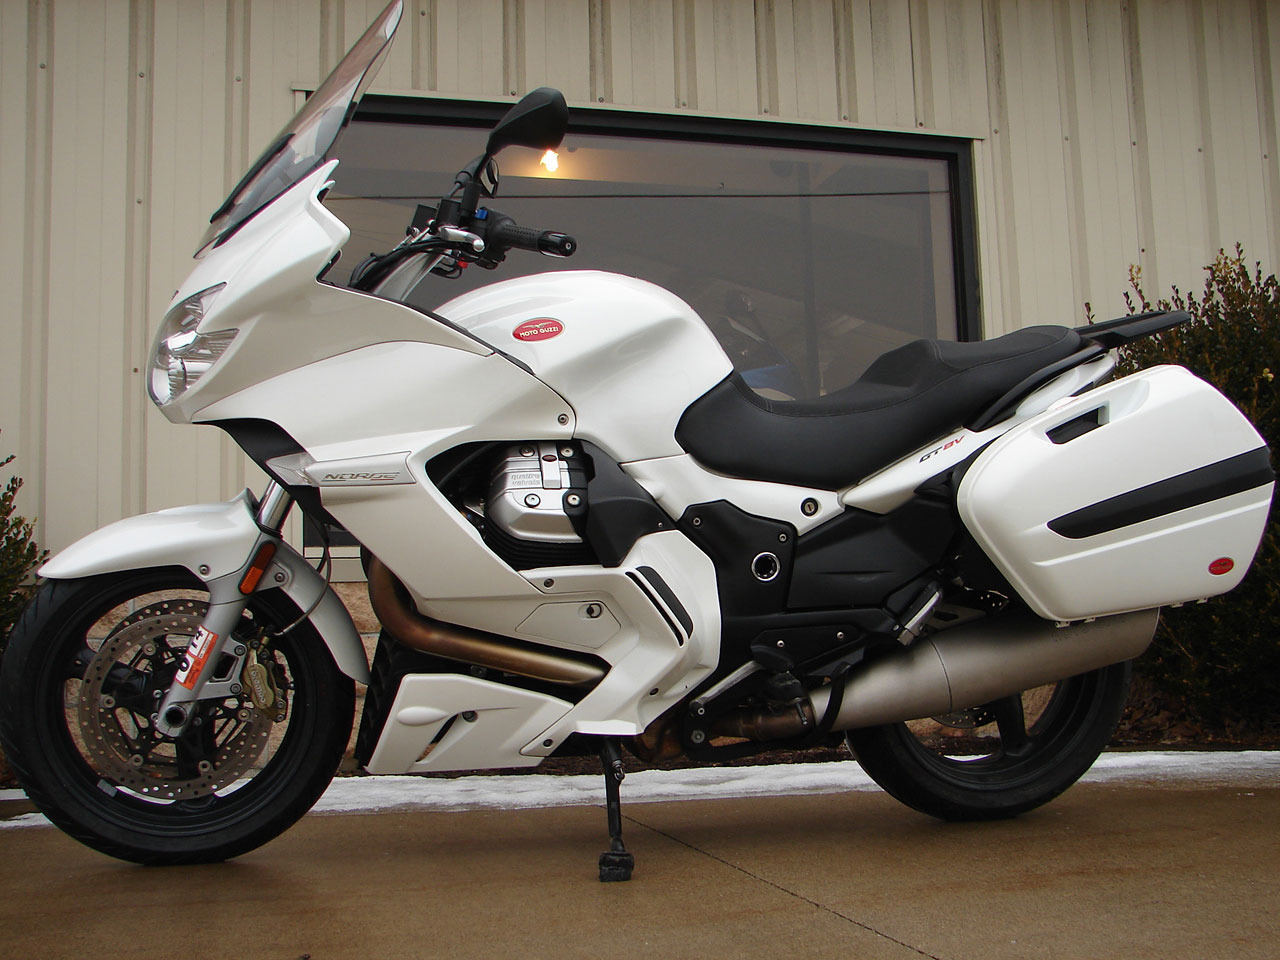 2011 Moto Guzzi Norge GT 1200, motorcycle listing